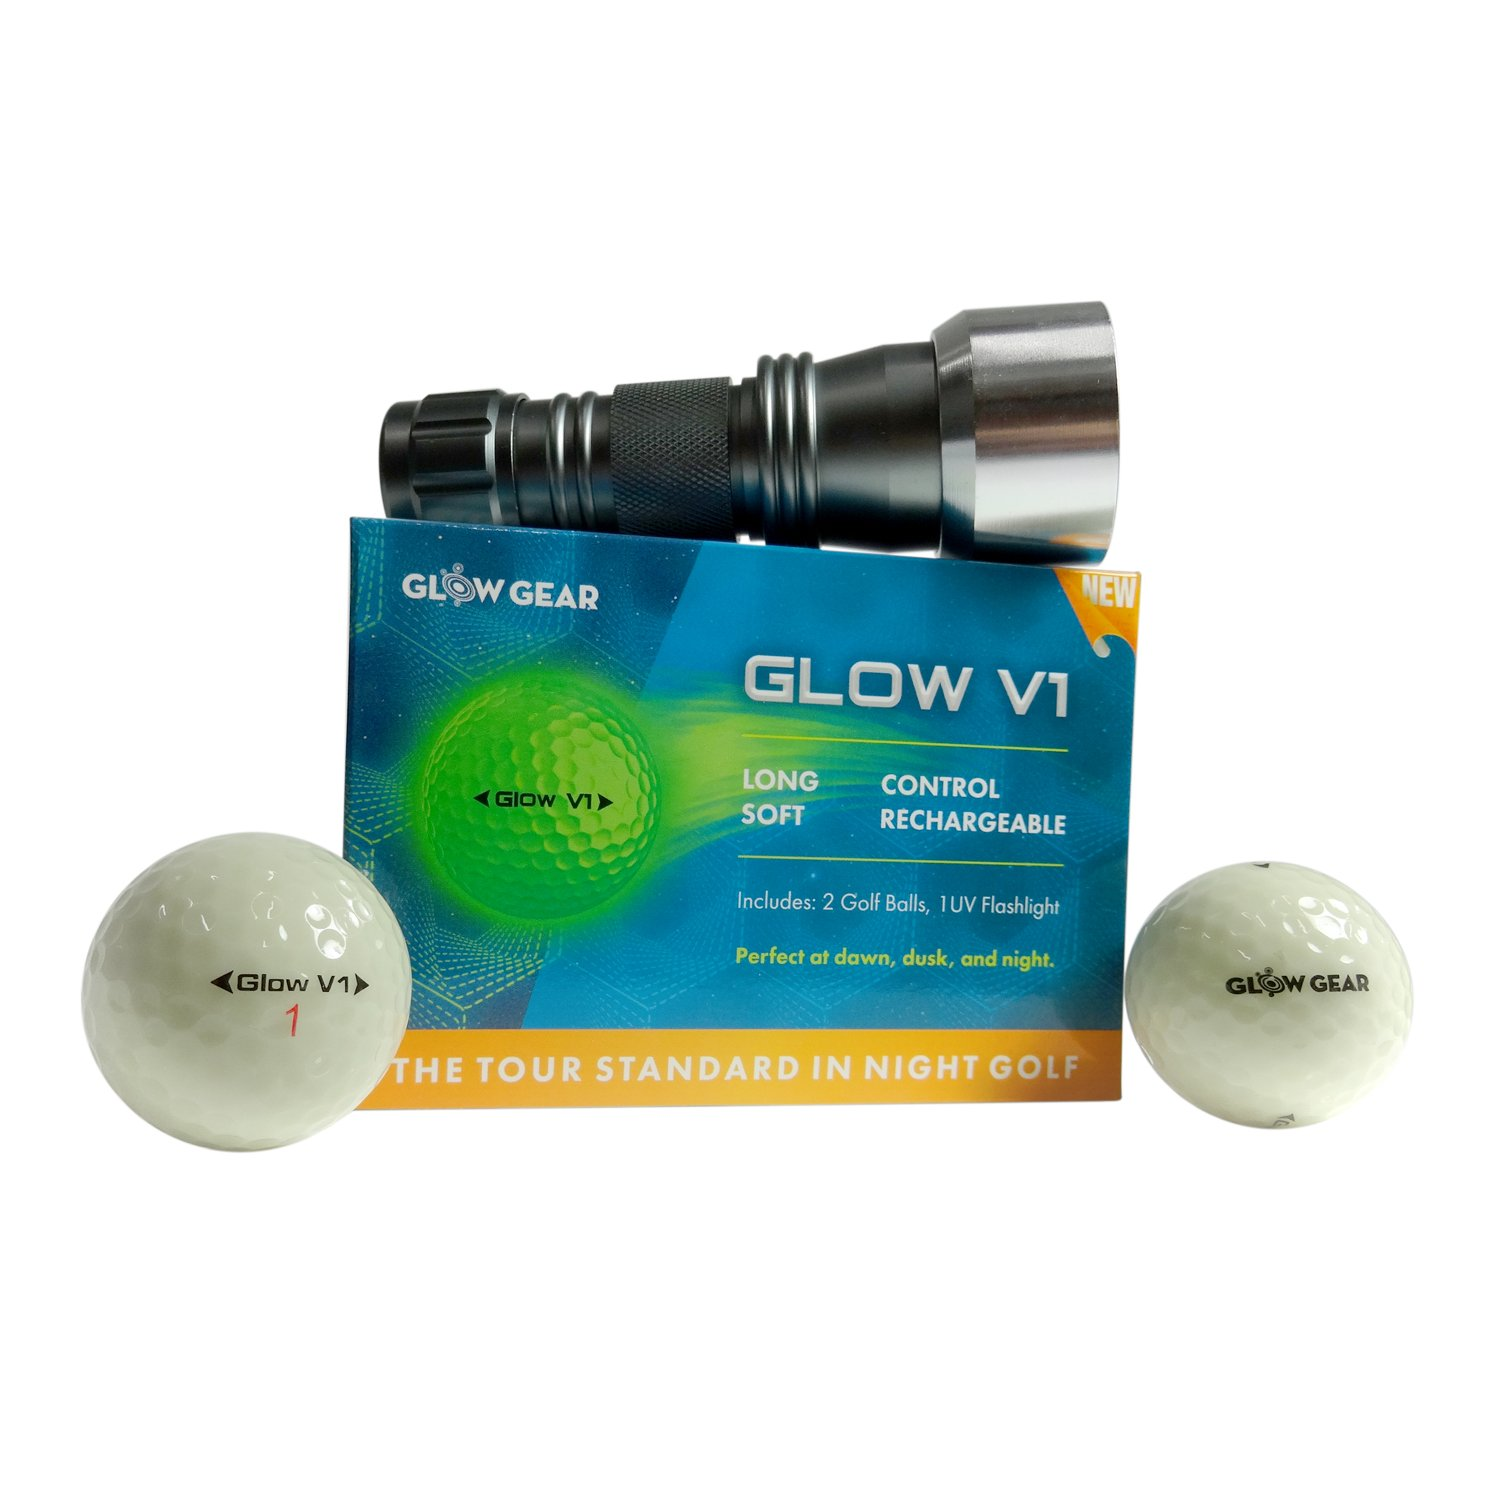 GlowV1 Night Golf Balls - Best Hitting Ultra Bright Glow Golf Ball - Compression Core and Urethane Skin - 2 Count, 6 Count, or 12 Count by GlowGear